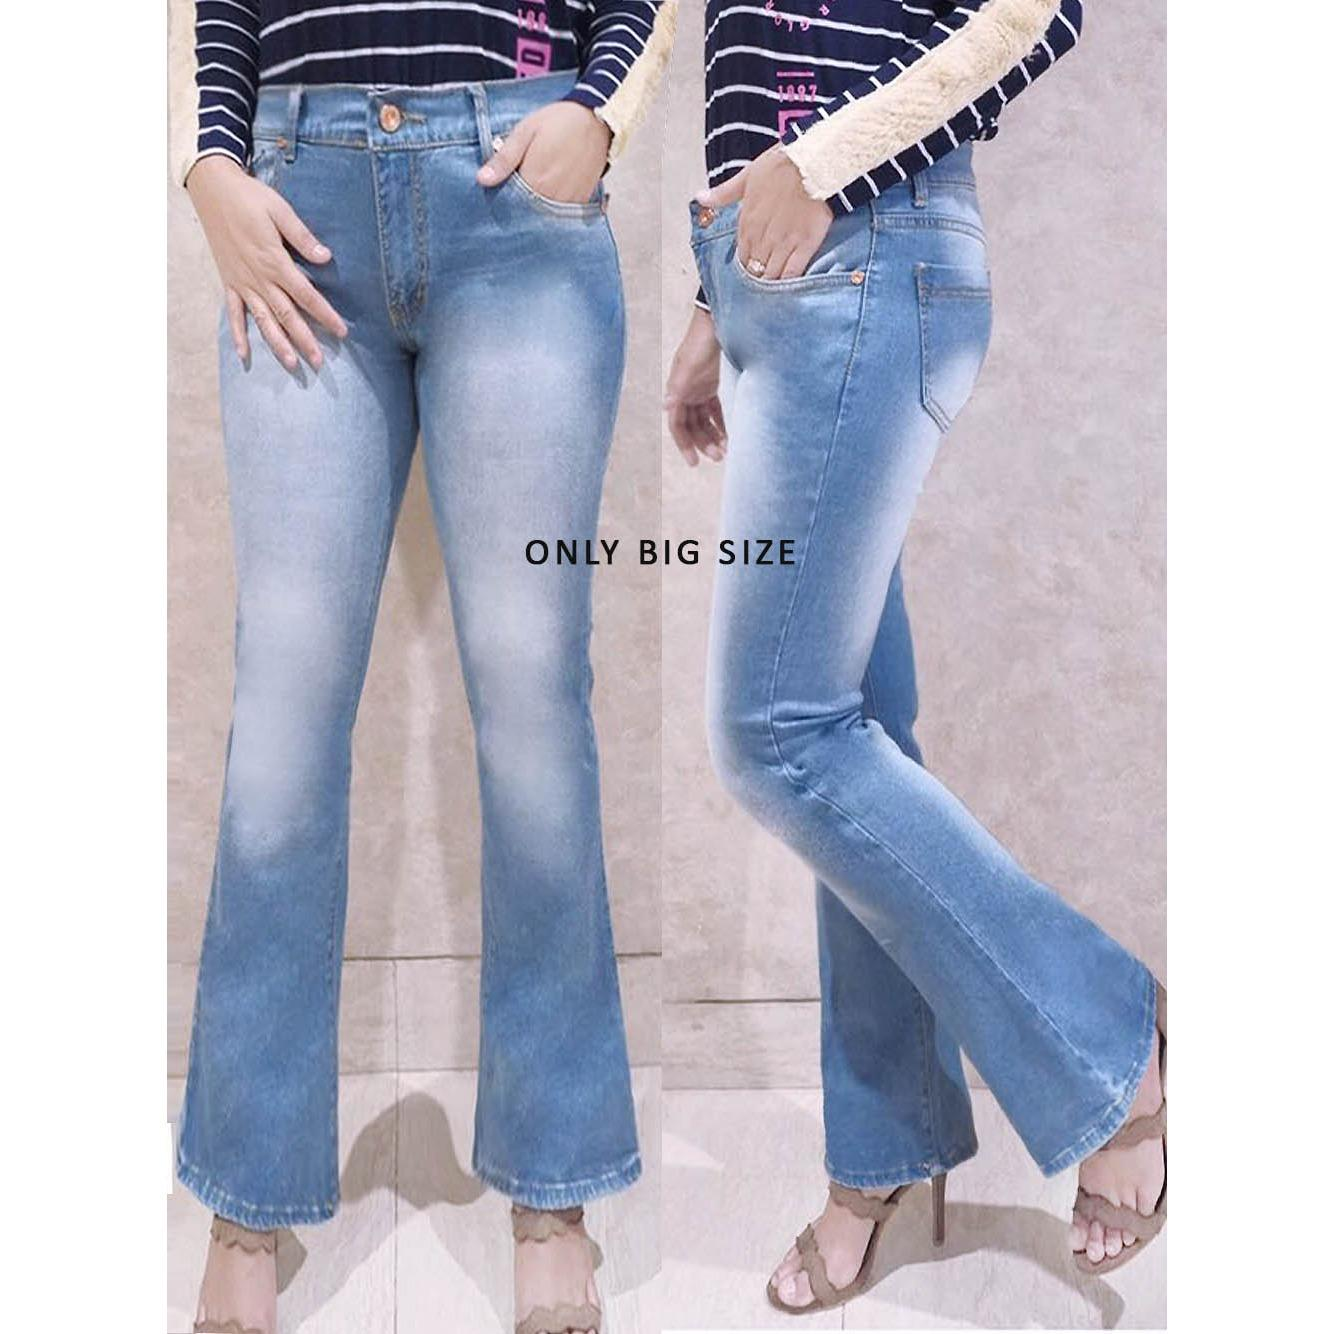 ANCIEN STORE Celana Cutbray Jeans Jumbo Wanita - Cutbray Light Wash DMD